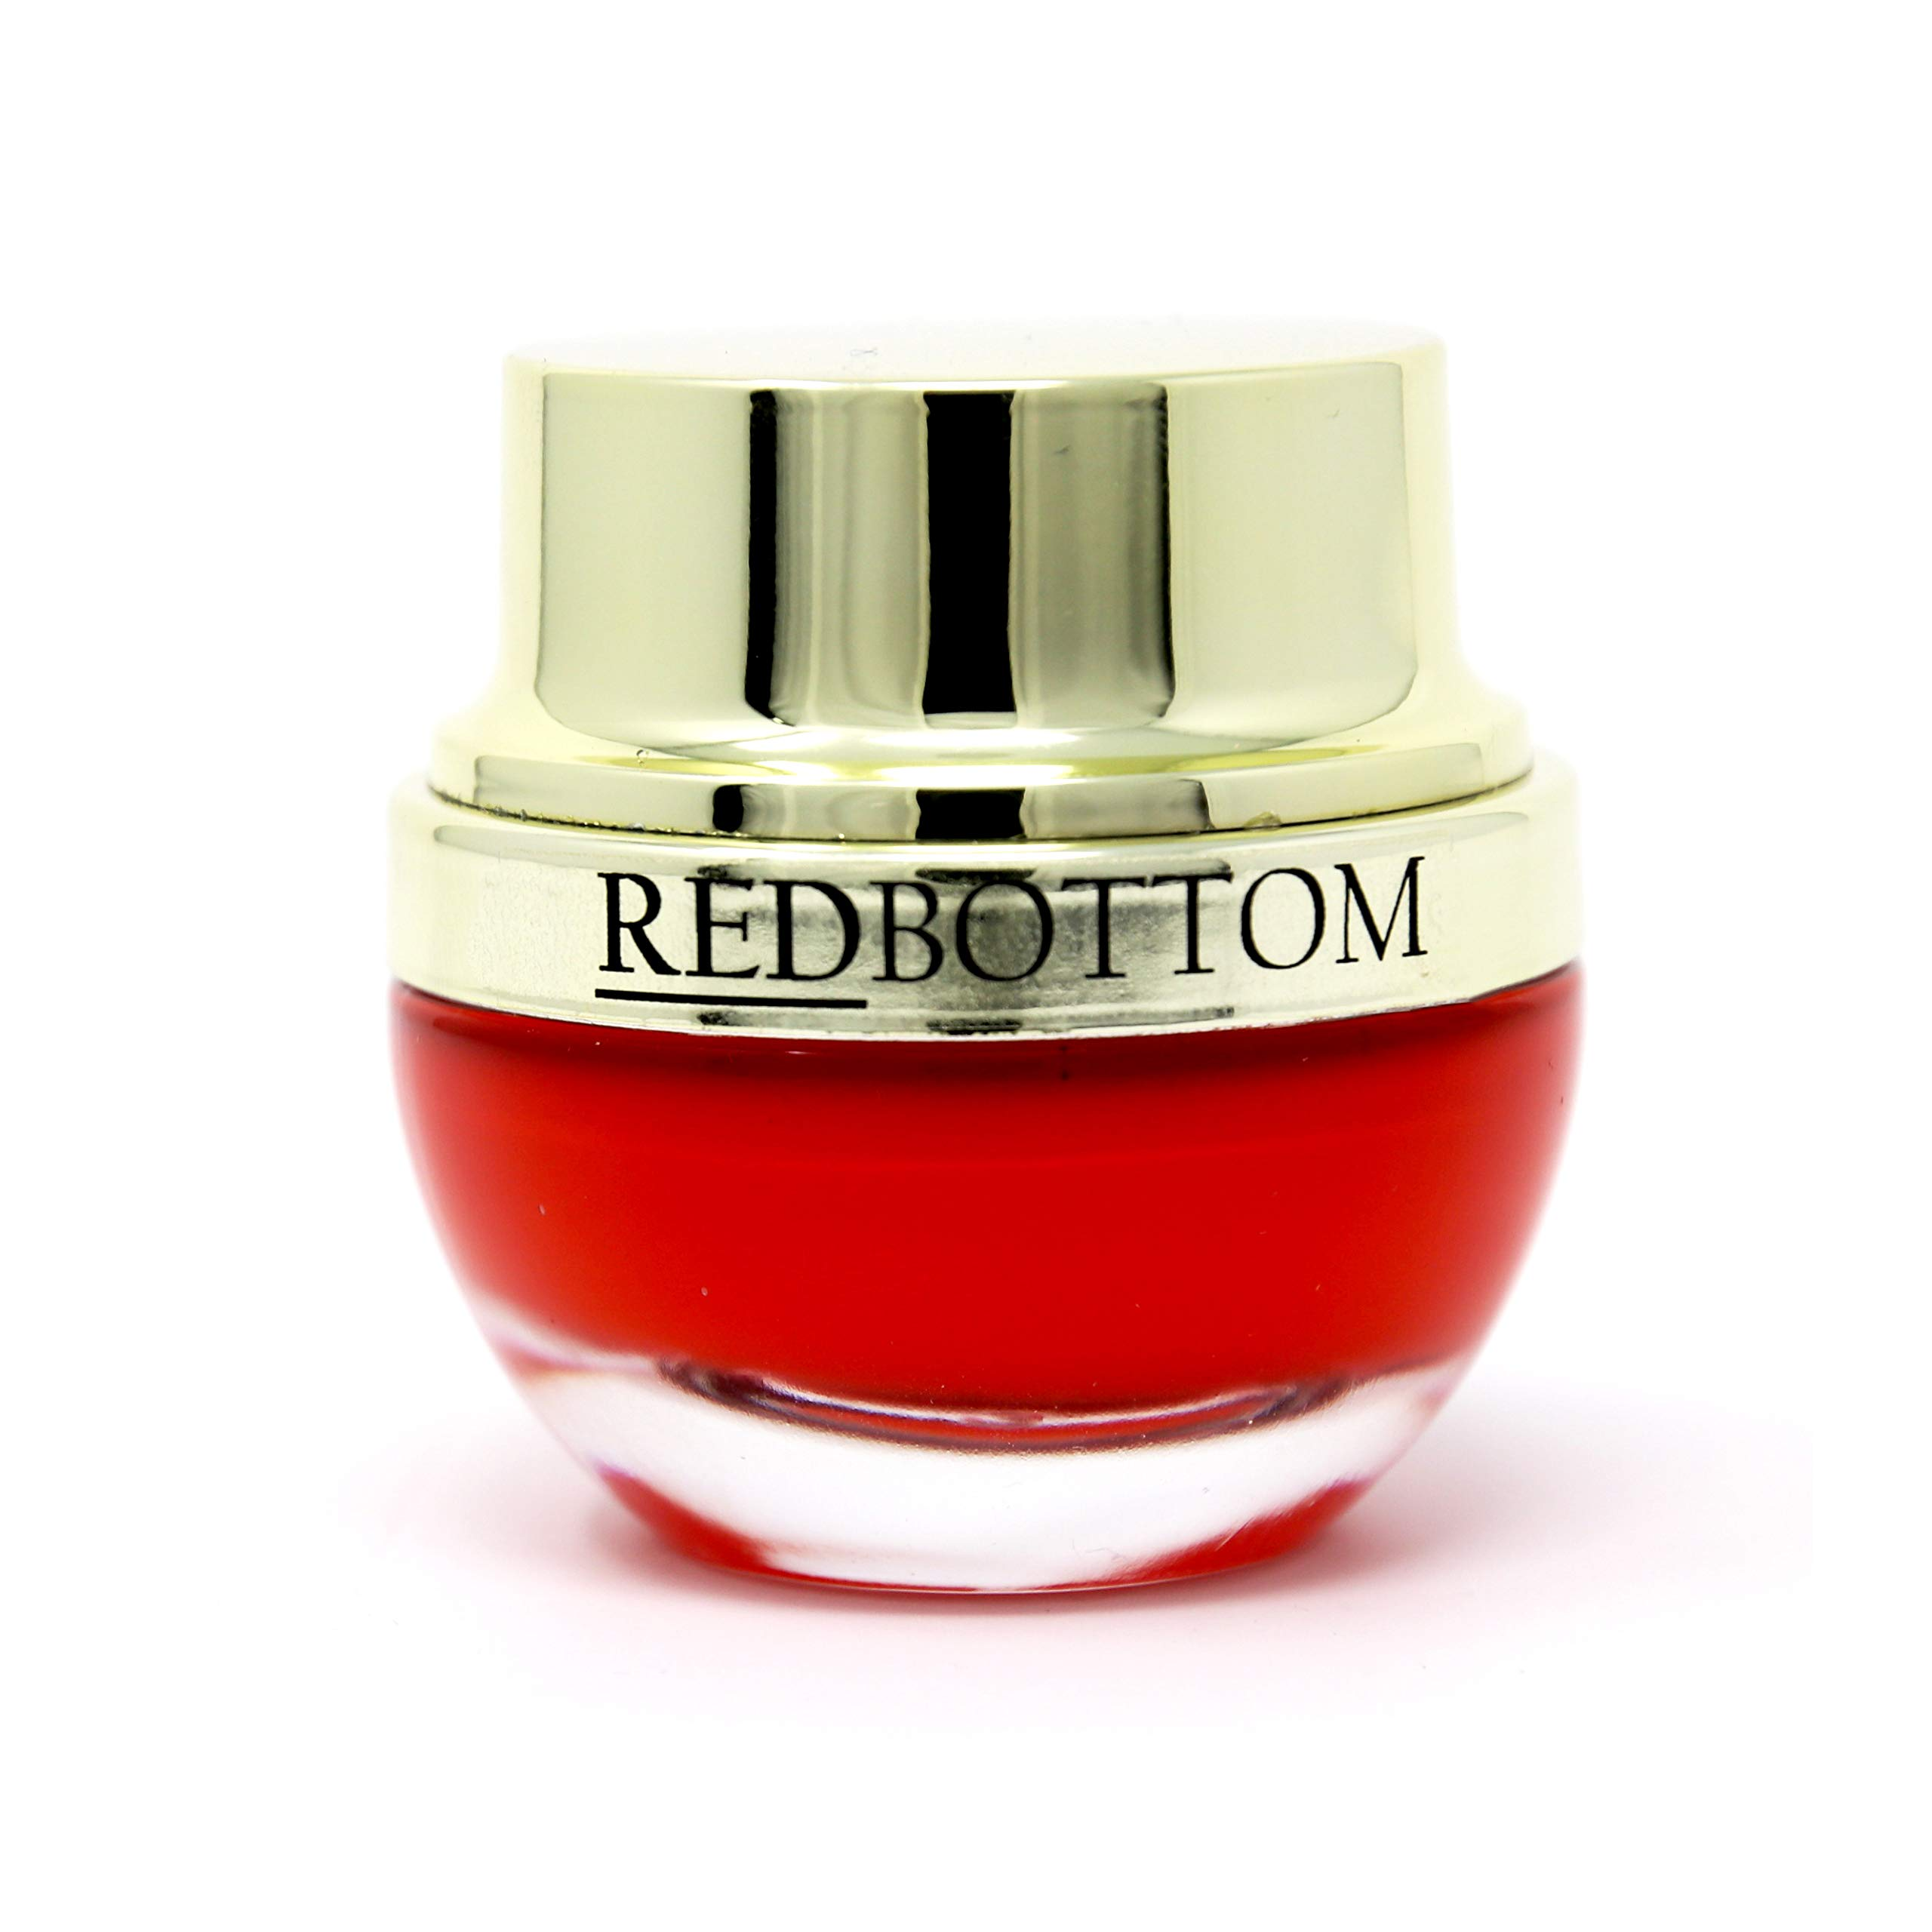 LuxDR RedBottom Rx Premium Luxury Red Soles Protective and Restoration Christian Louboutin Paint for Any Women Heels - Pumps - Men Loafers - Dance - Walk and ReVive, ReStore & Protect. Large 30ml USA